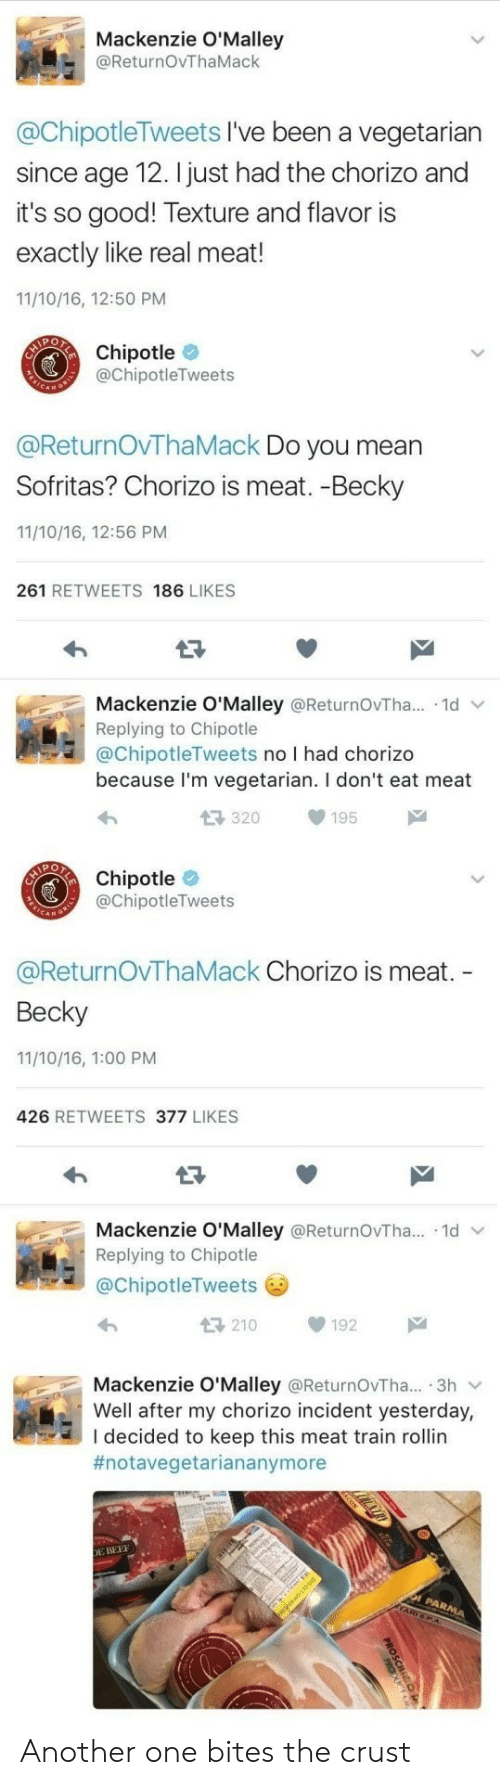 mackenzie: Mackenzie O'Malley  @ReturnOvThaMack  @ChipotleTweets I've been a vegetarian  since age 12. I just had the chorizo and  it's so good! Texture and flavor is  exactly like real meat!  11/10/16, 12:50 PM  CAIPORCE  Chipotle  @ChipotleTweets  @ReturnOvTha Mack Do you mean  Sofritas? Chorizo is meat. -Becky  11/10/16, 12:56 PM  261 RETWEETS 186 LIKES  Mackenzie O'Malley @ReturnOvTha... 1d  Replying to Chipotle  @ChipotleTweets no I had chorizo  because I'm vegetarian. I don't eat meat  17320  195  Chipotle  @ChipotleTweets  @ReturnOvTha Mack Chorizo is meat.  Becky  11/10/16, 1:00 PM  426 RETWEETS 377 LIKES  Mackenzie O'Malley @ReturnOvTha... 1d  Replying to Chipotle  @ChipotleTweets  210  192  Mackenzie O'Malley @ReturnOvTha... 3h  Well after my chorizo incident yesterday,  I decided to keep this meat train rollin  #notavegetariananymore  E BEEF  PARMA  ARTSPA Another one bites the crust